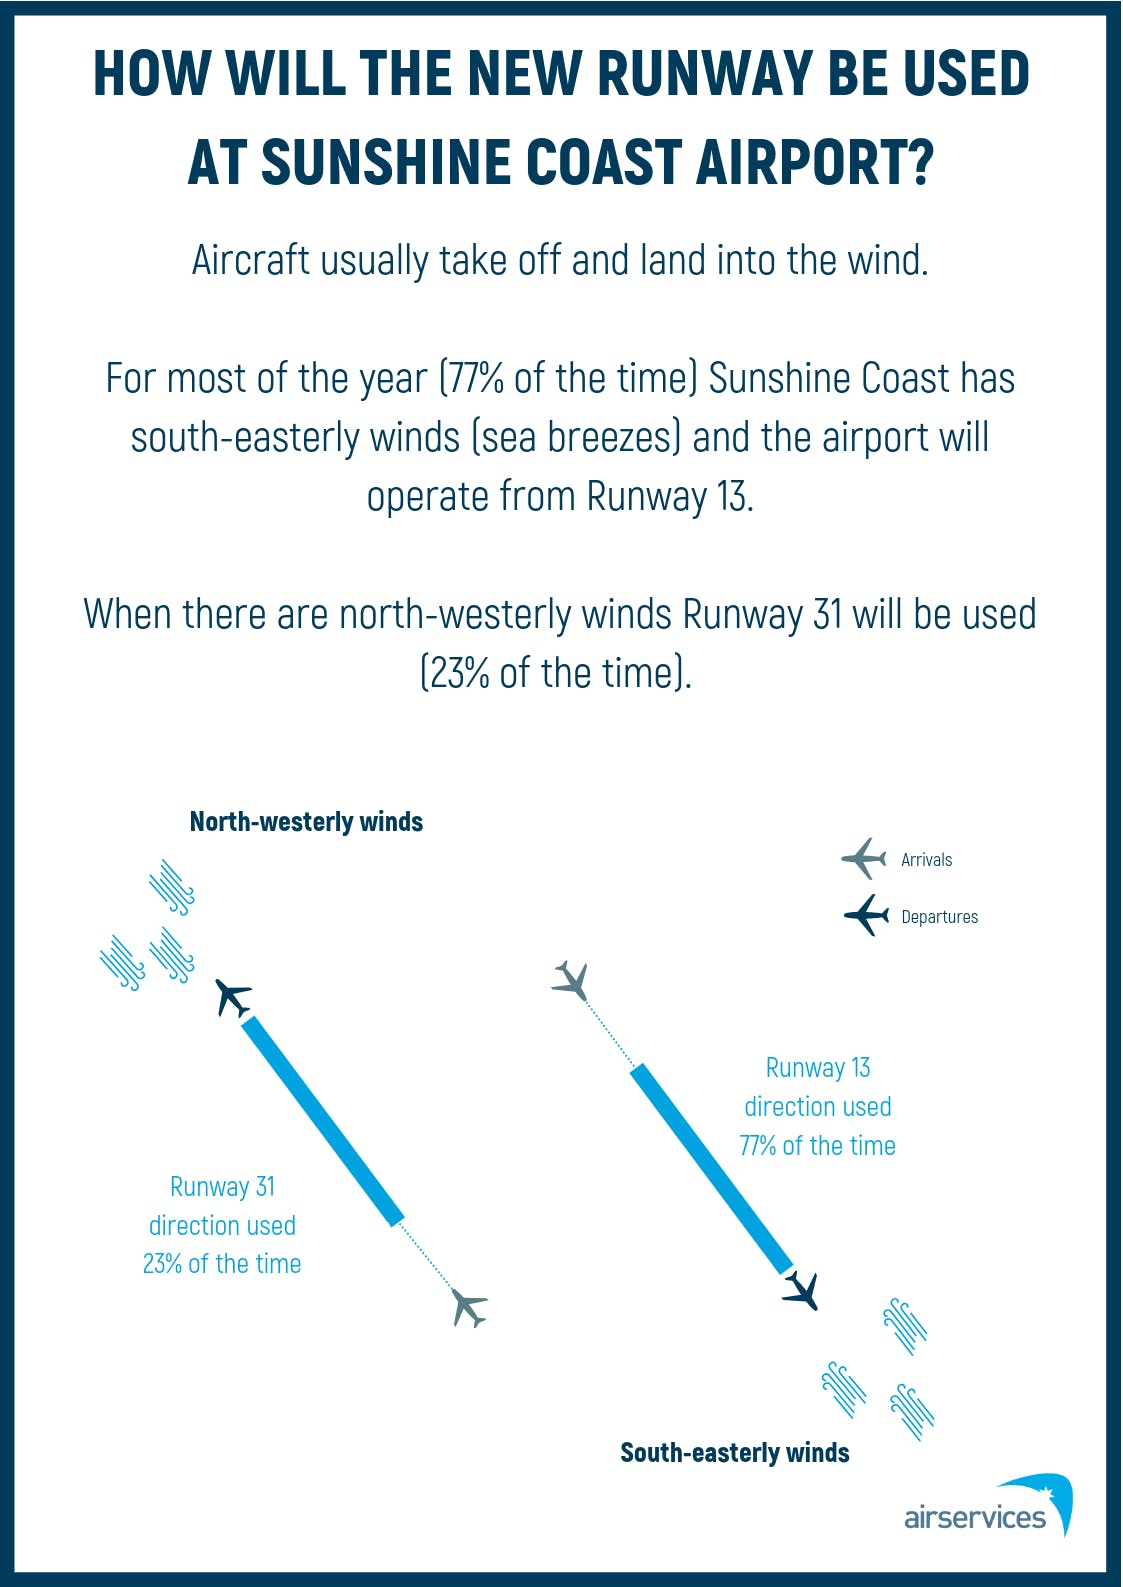 04 Runway Usage Poster - Sunshine Coast (July 2019)